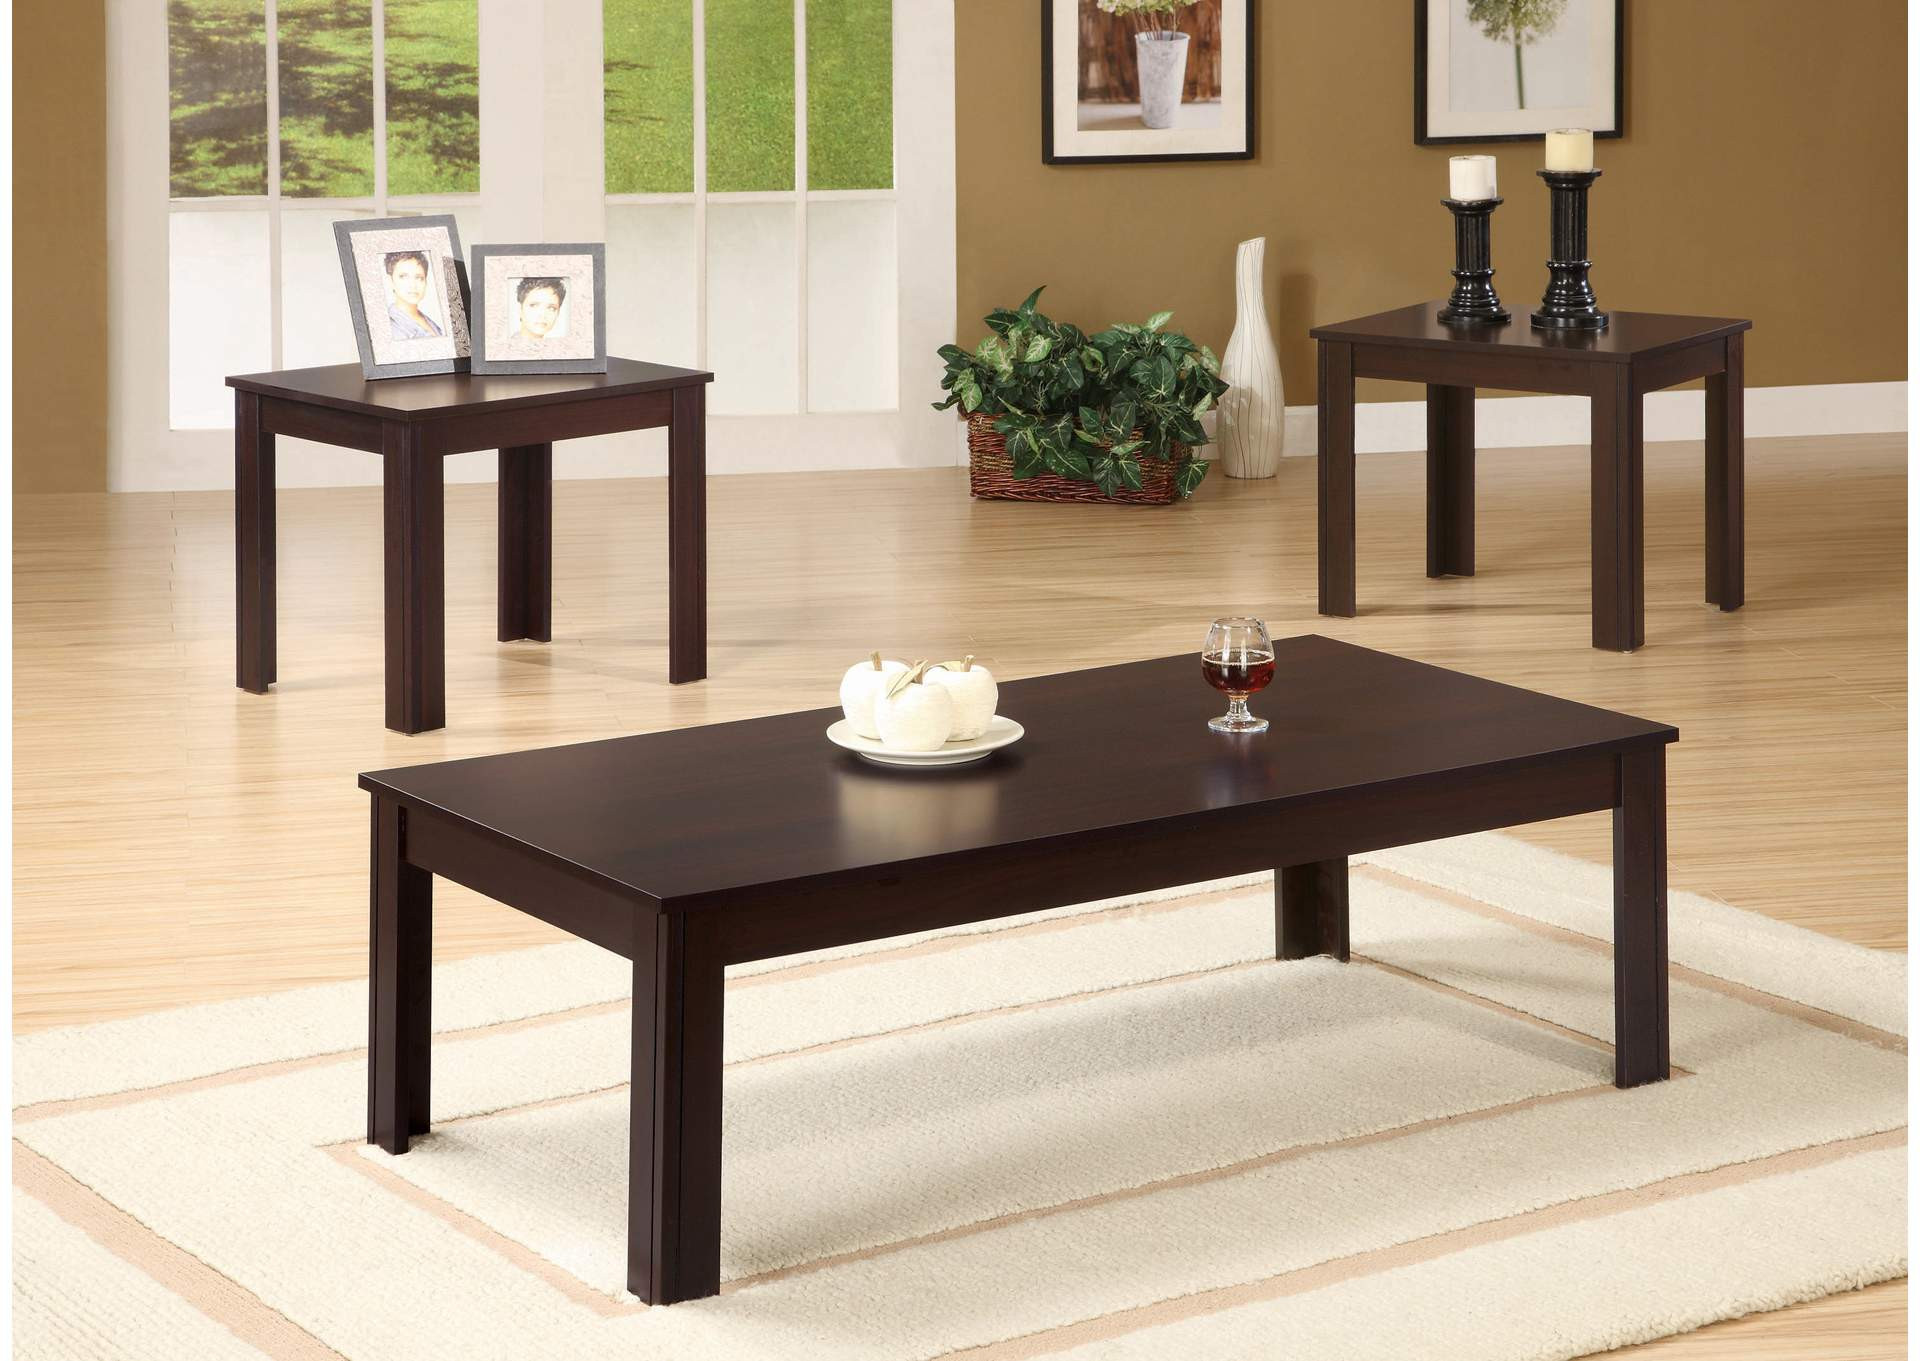 3pc Occasional Group,ABF Coaster Furniture